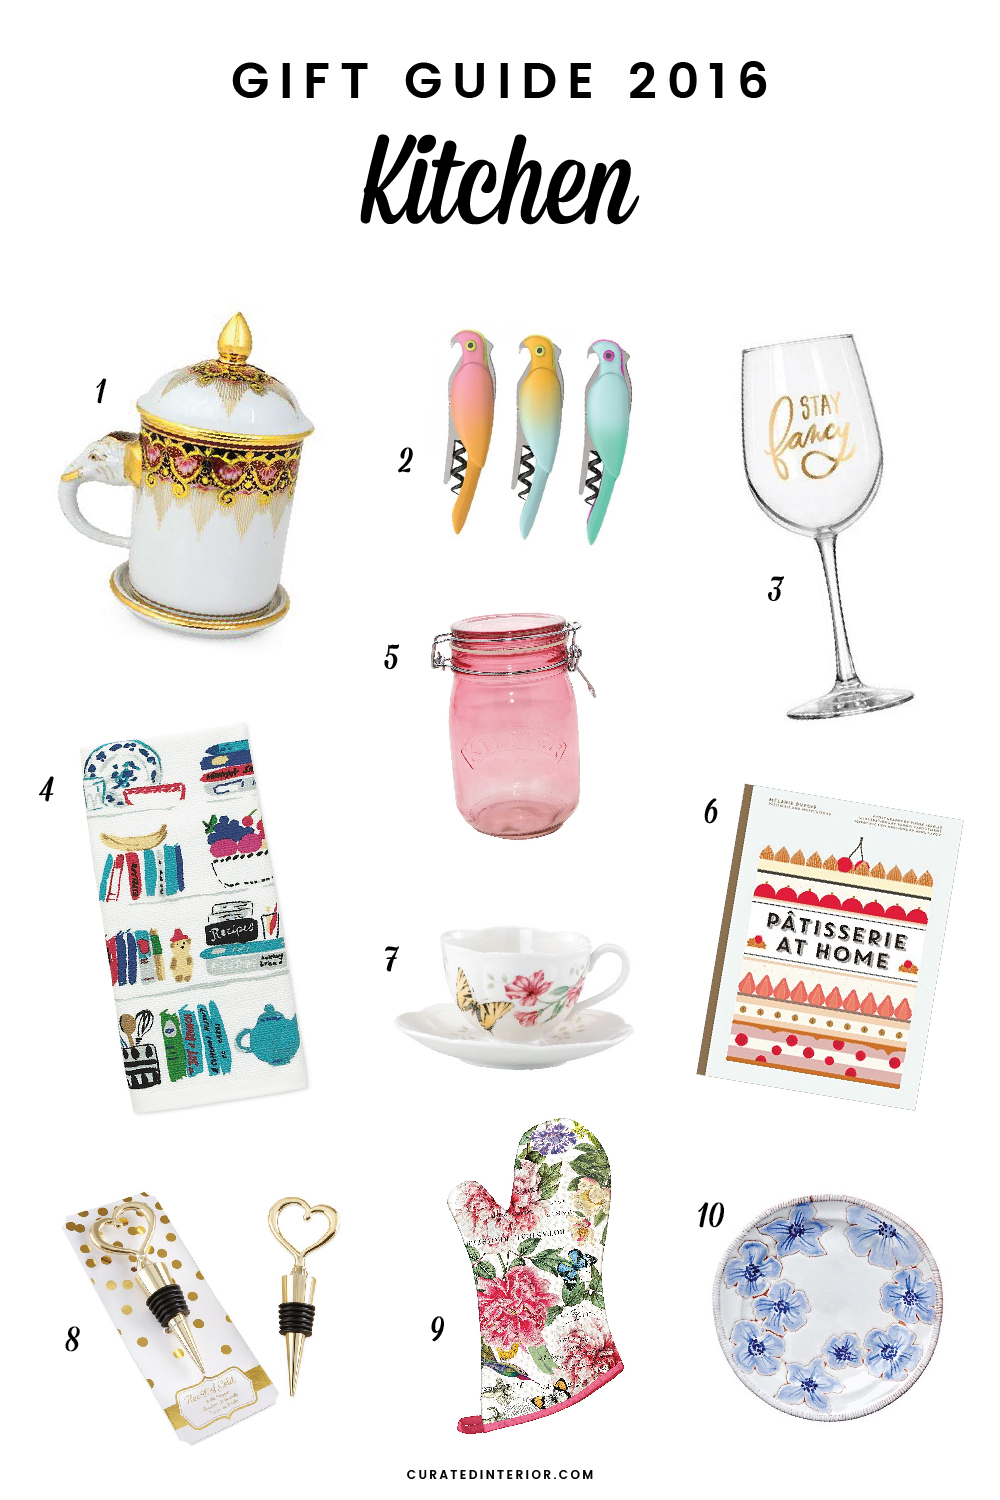 {gift guide} 10 Kitchen Decor Gifts for 2016